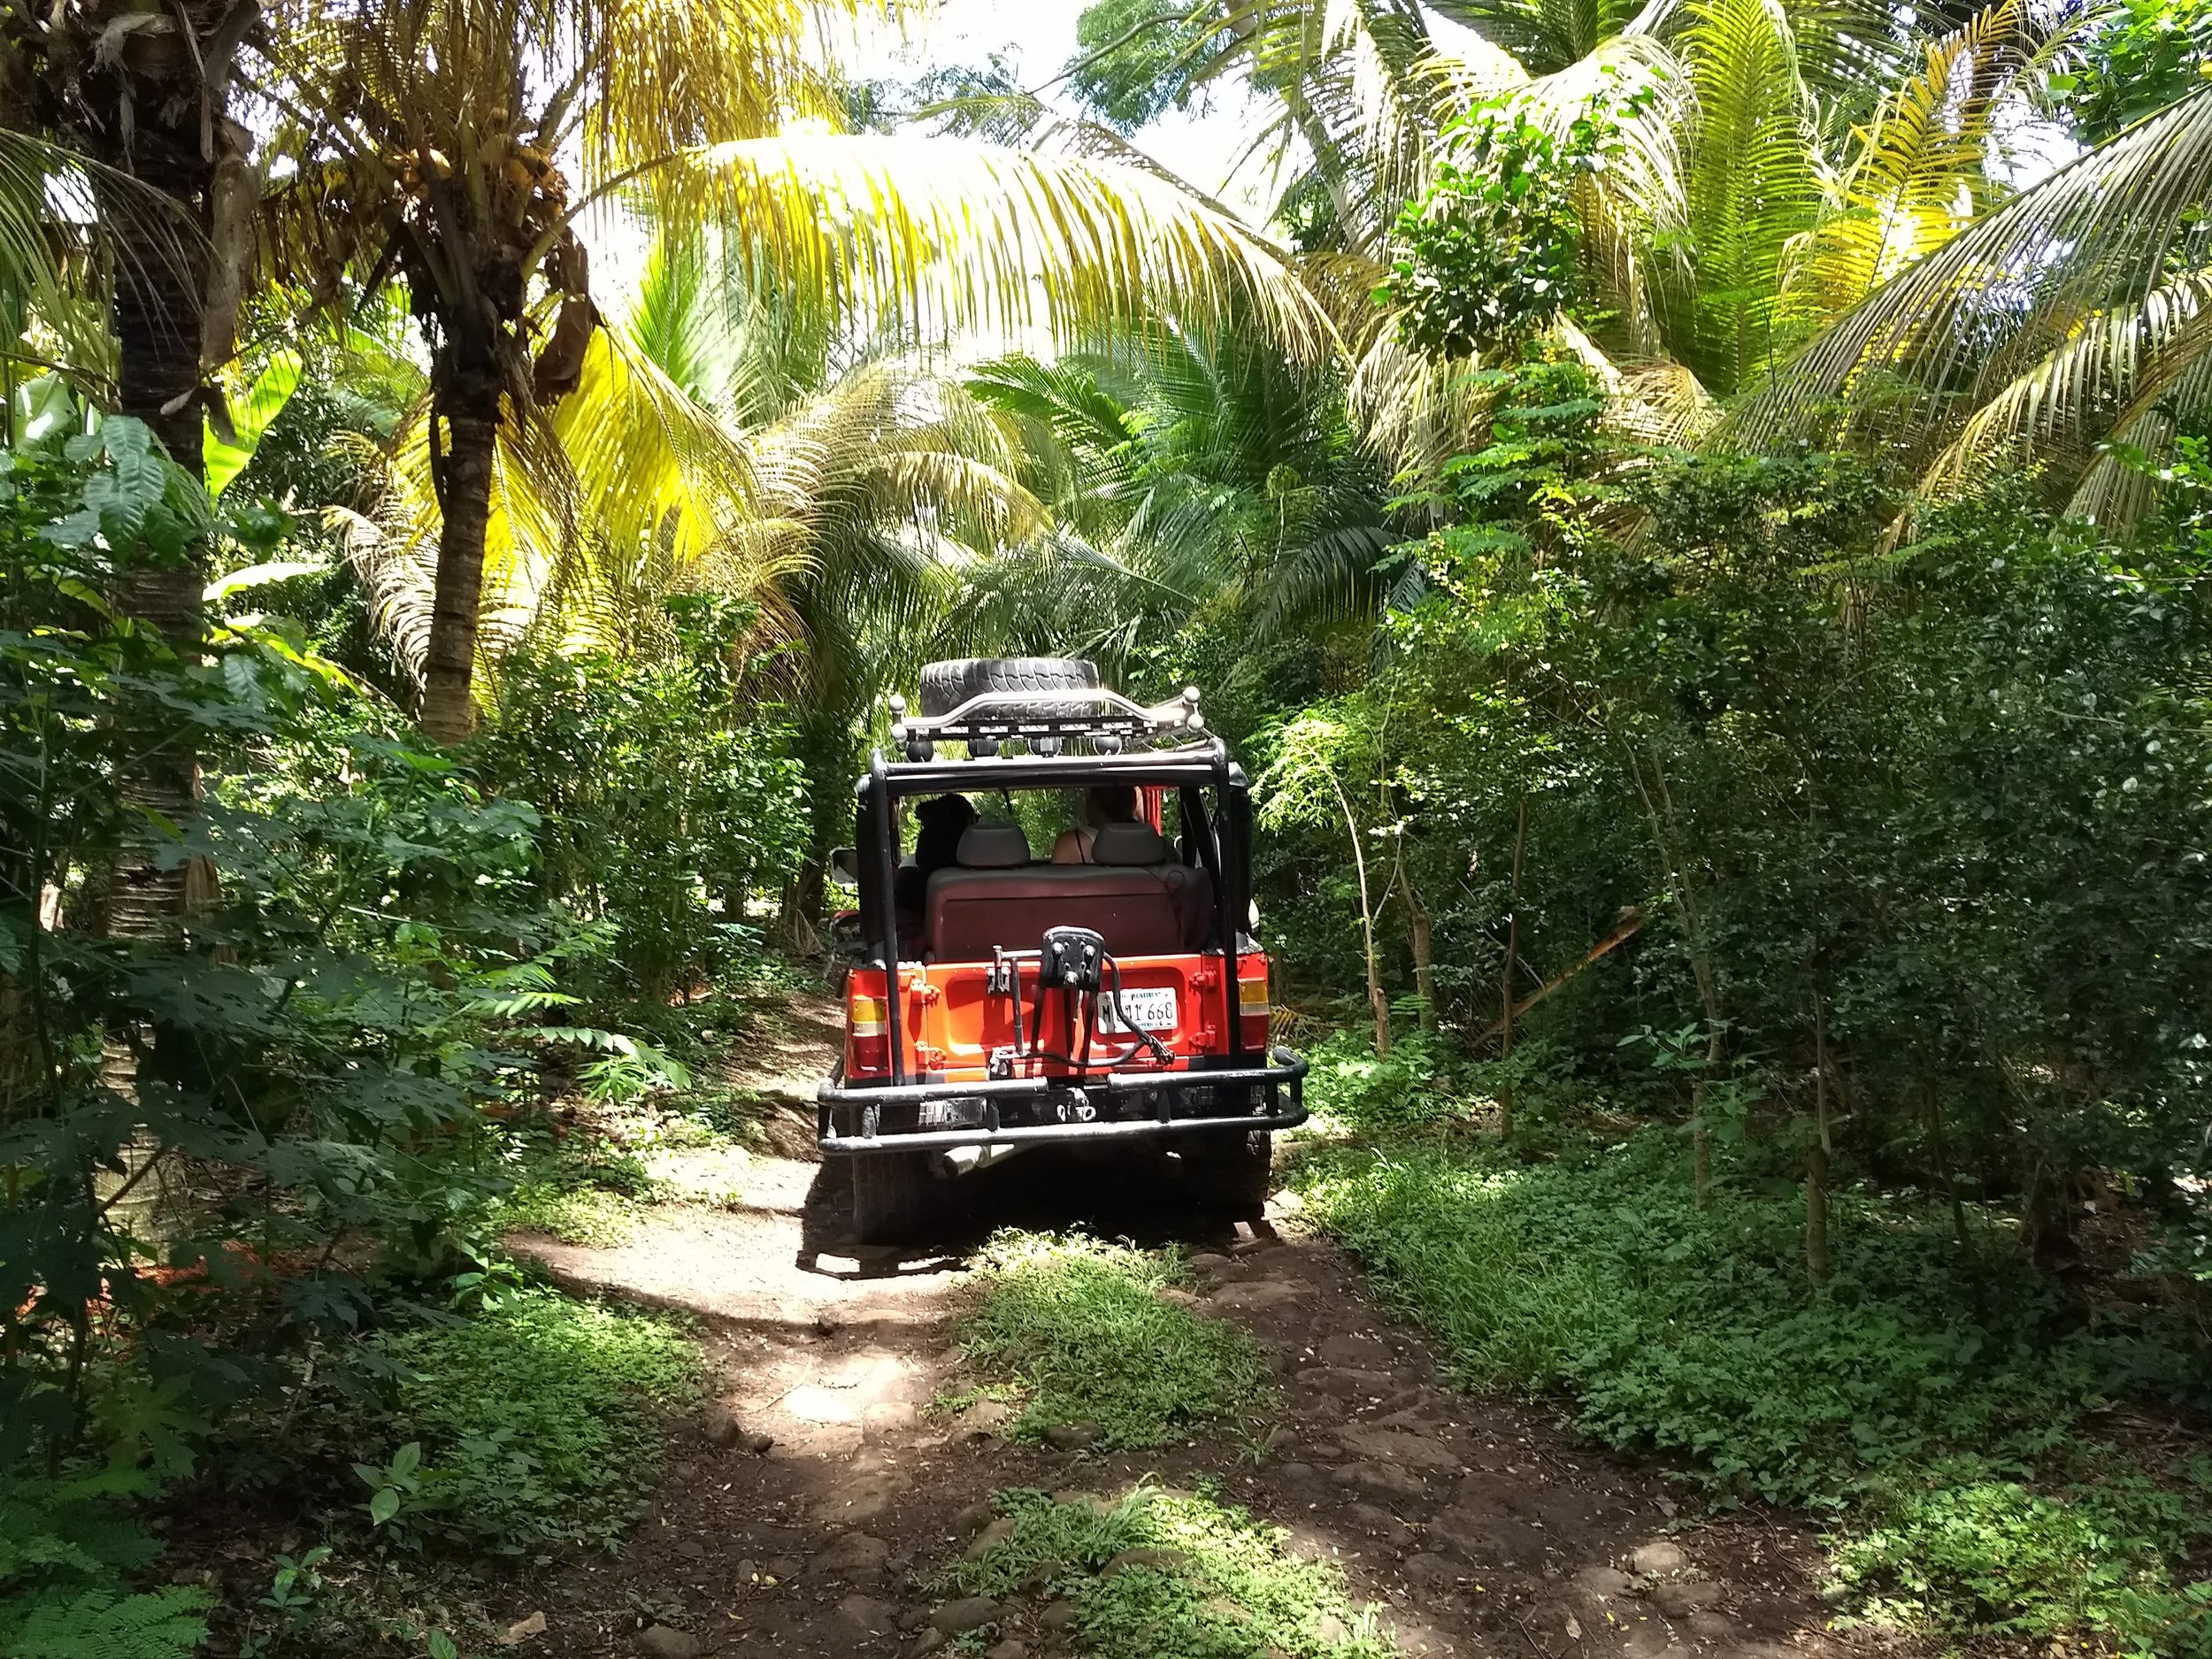 Island taxi rides and friendly drivers available at La Bambouseraie Ometepe